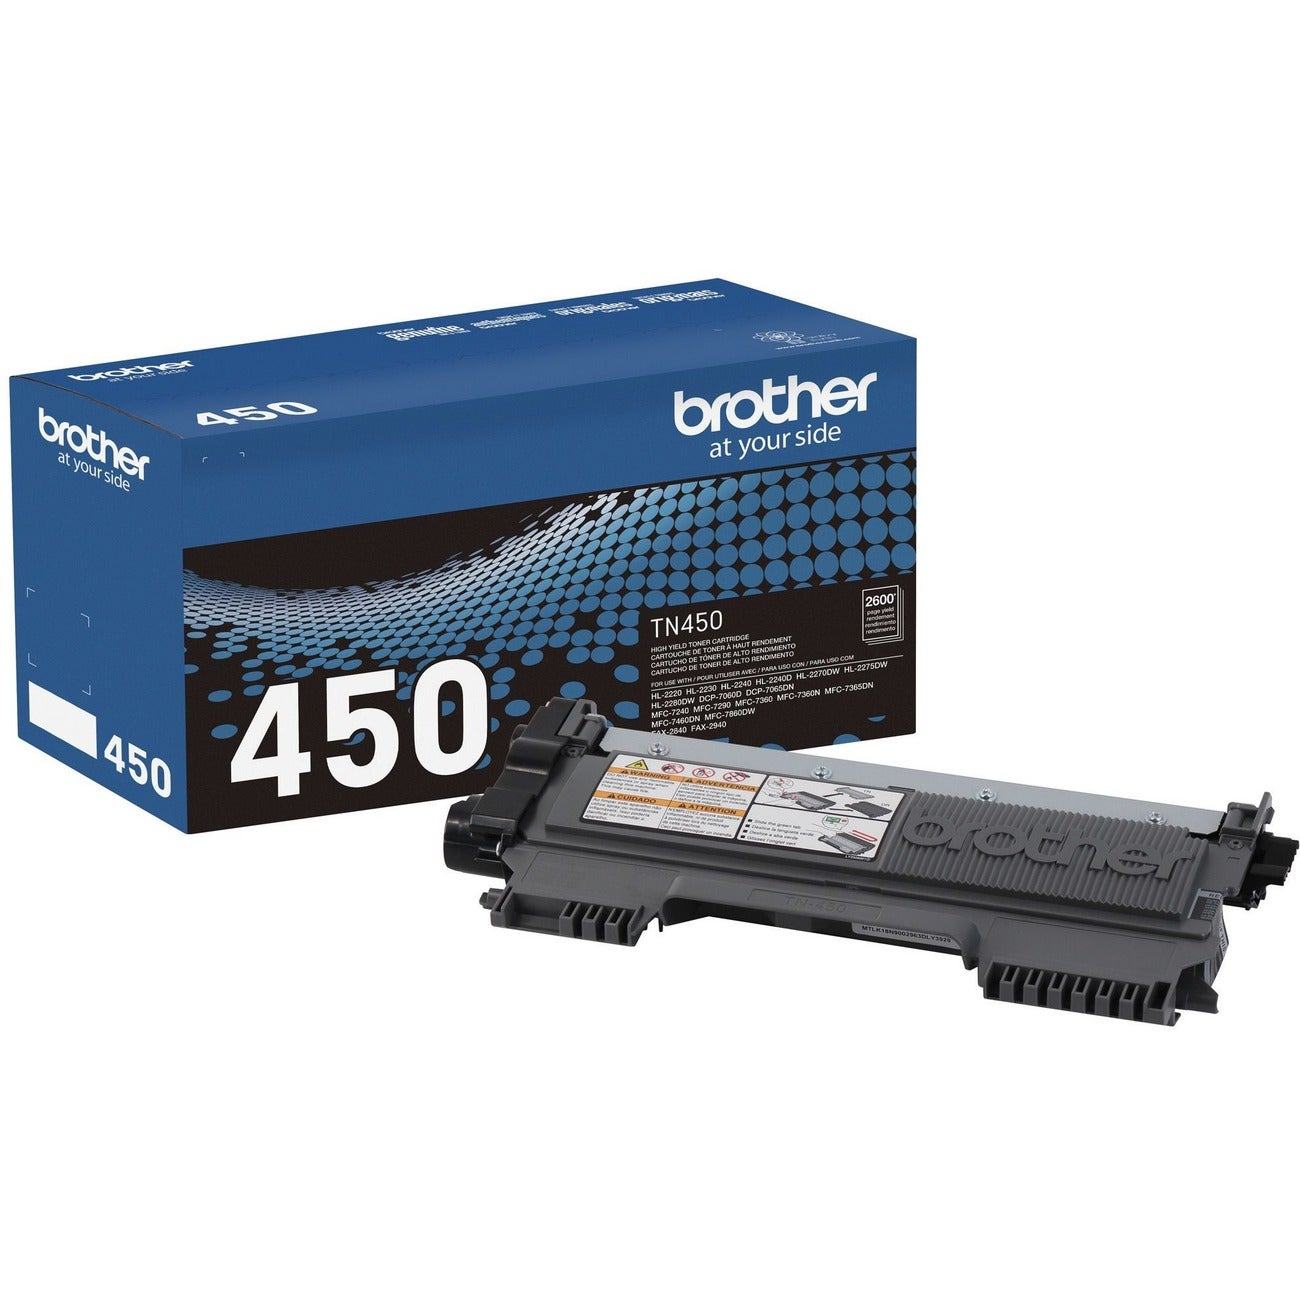 Brother TN450 High Yield Black Toner Cartridge - Thumbnail 0